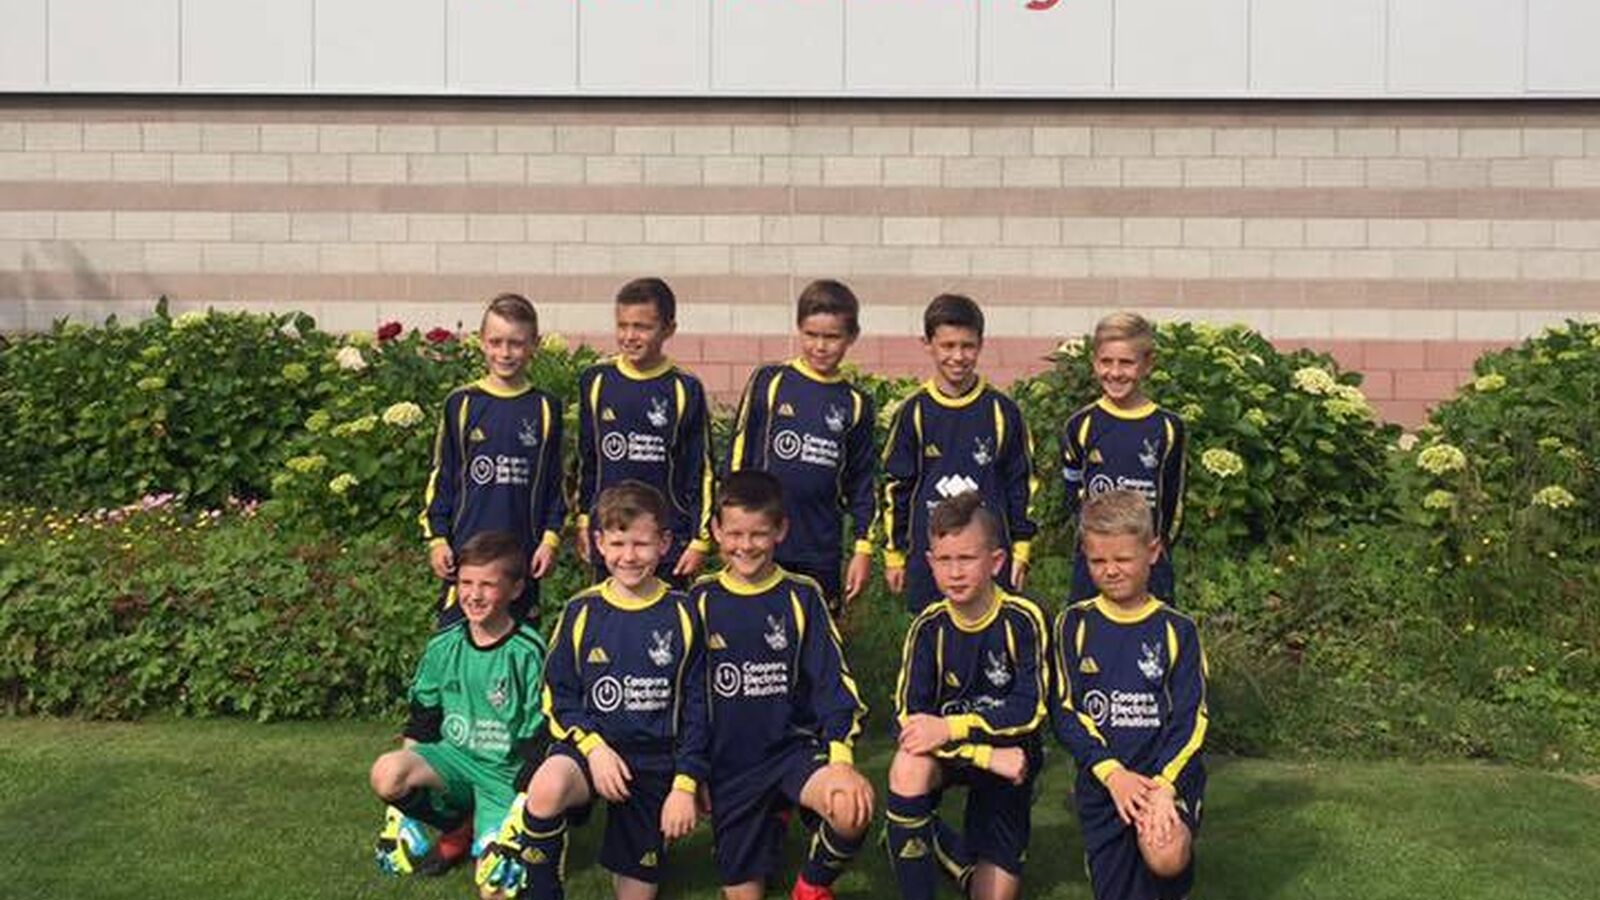 Ormskirk FC Under 9s take on Liverpool FC at the Academy